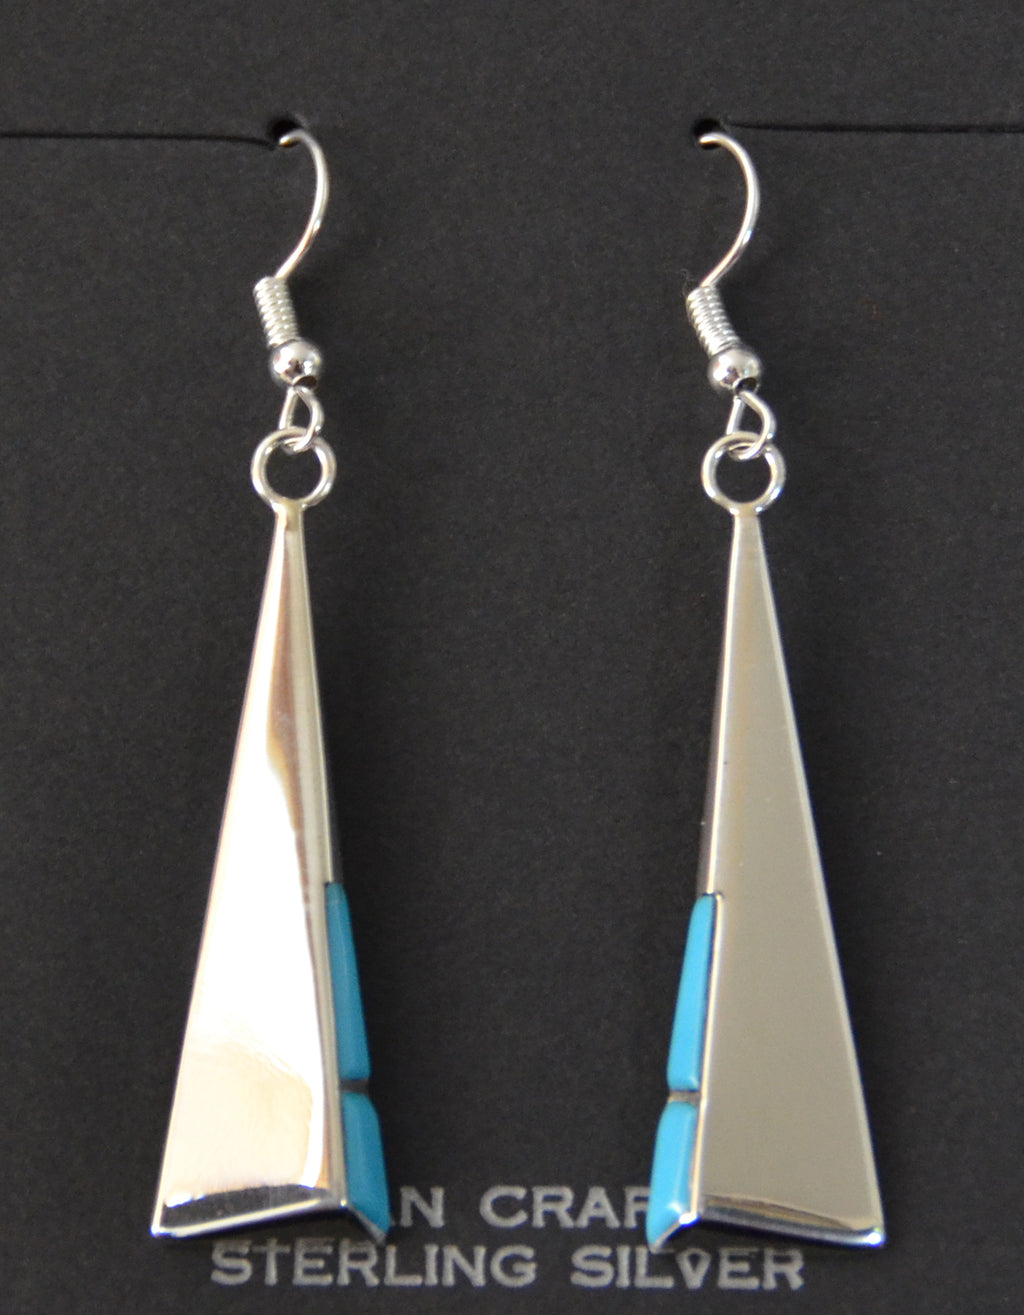 Native American Jewelry : Navajo : Leonard Jim : Earrings :  NAJ-55E - Getzwiller's Nizhoni Ranch Gallery